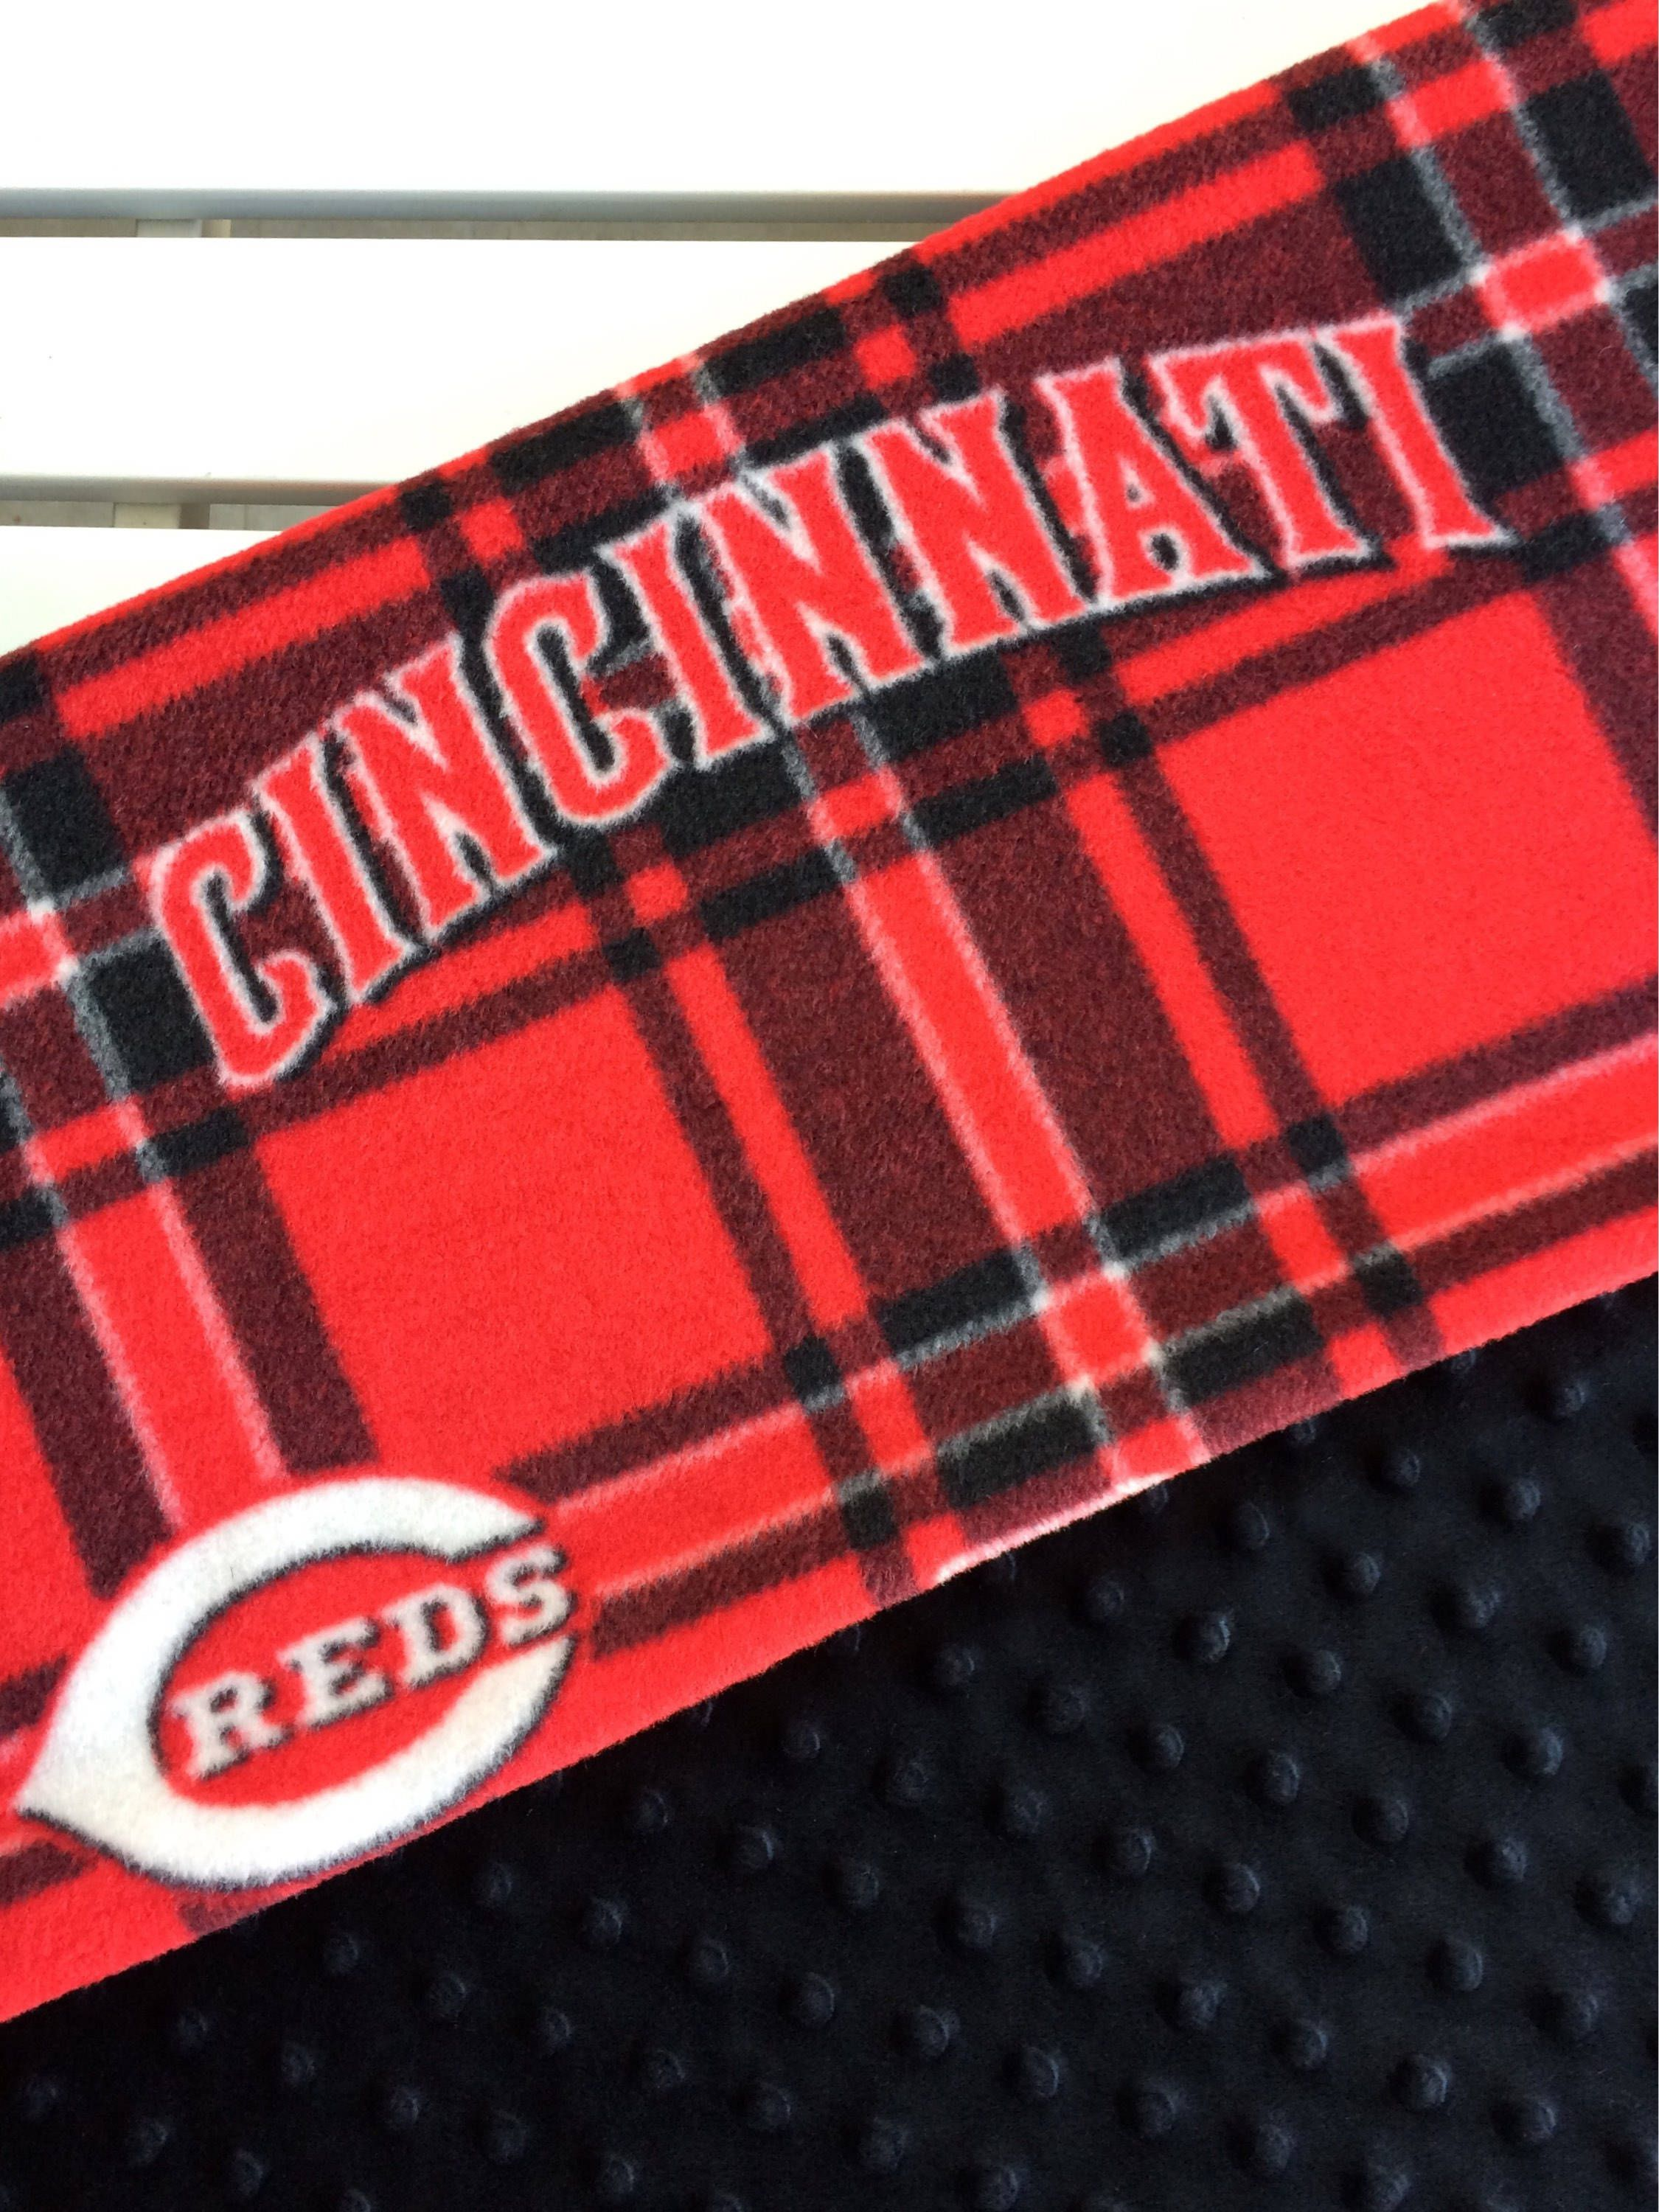 A cincinnati reds personalized fleece blanket makes the perfect a cincinnati reds personalized fleece blanket makes the perfect gift for even the youngest redsfan nothing says special like personalized babyblankets negle Image collections